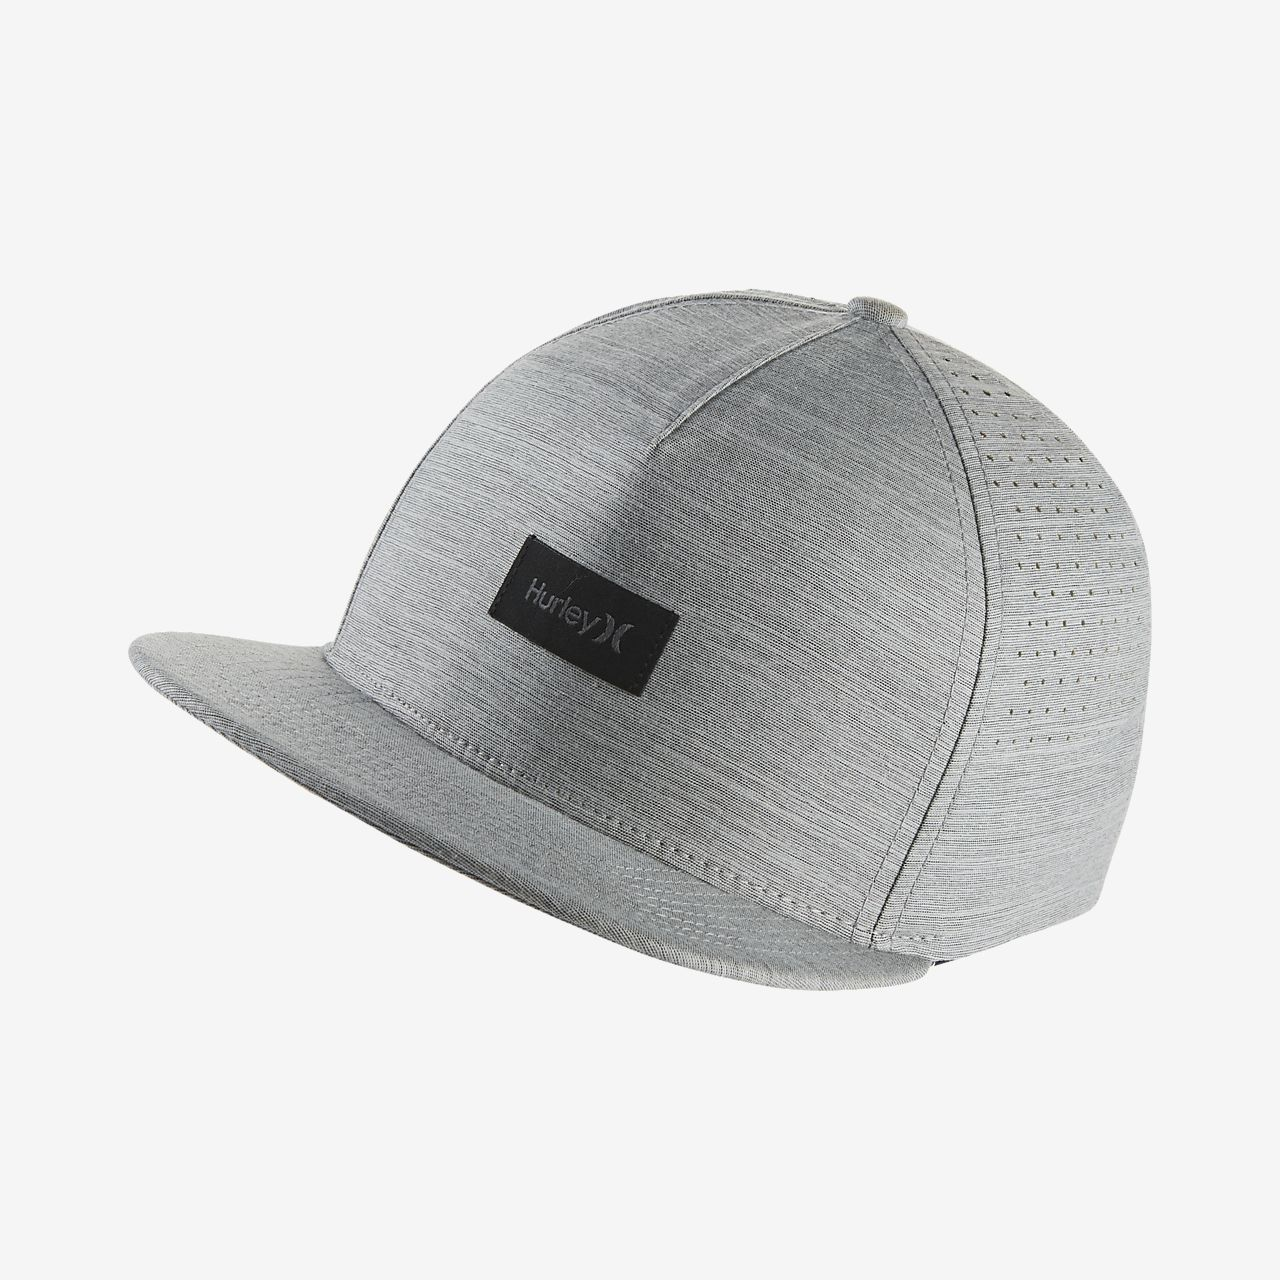 brand new d6d8e e8b1f ... coupon code for hurley dri fit staple adjustable hat b8184 41510